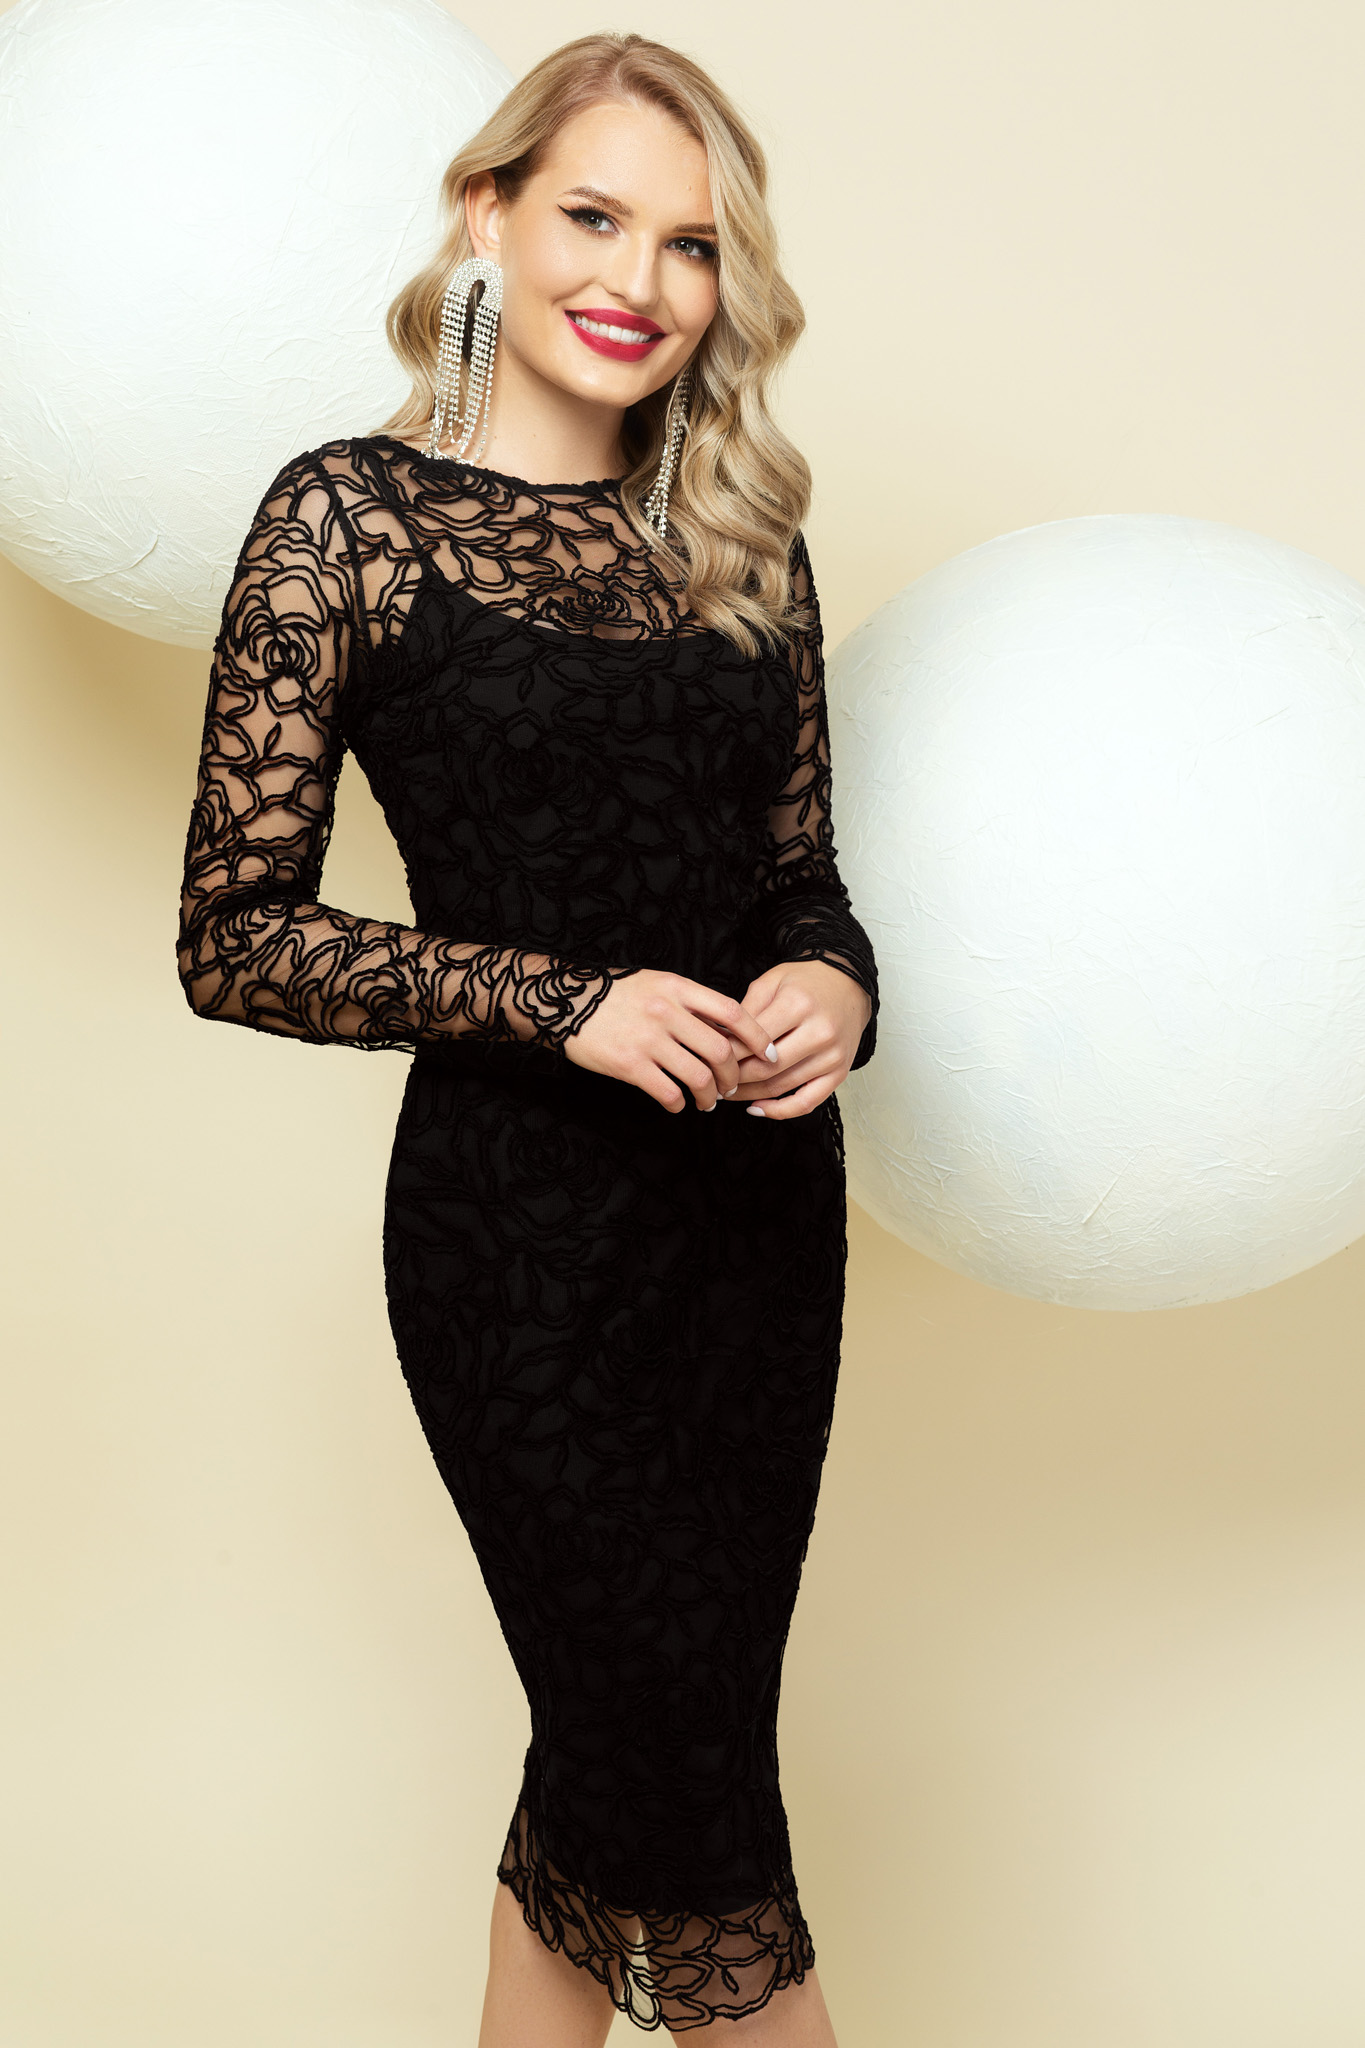 Dress occasional black lace overlay midi with tented cut